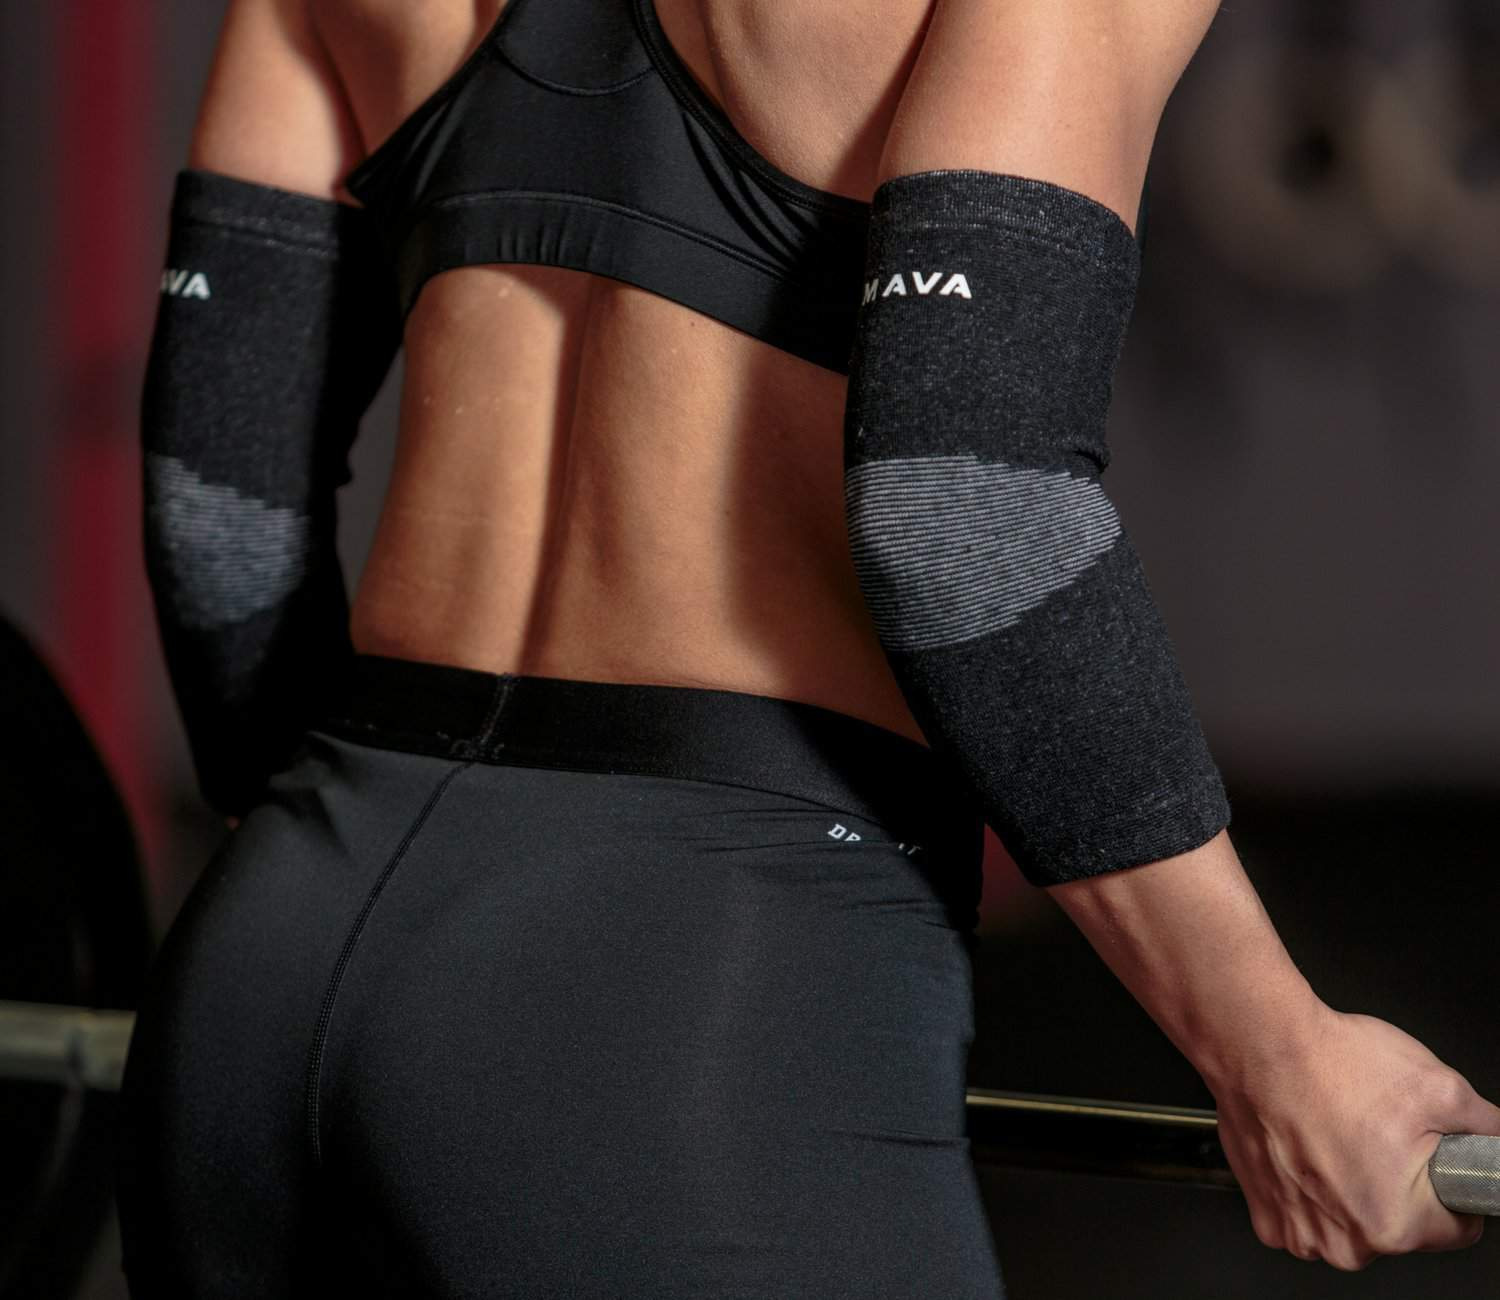 Mava Elbow Sleeves